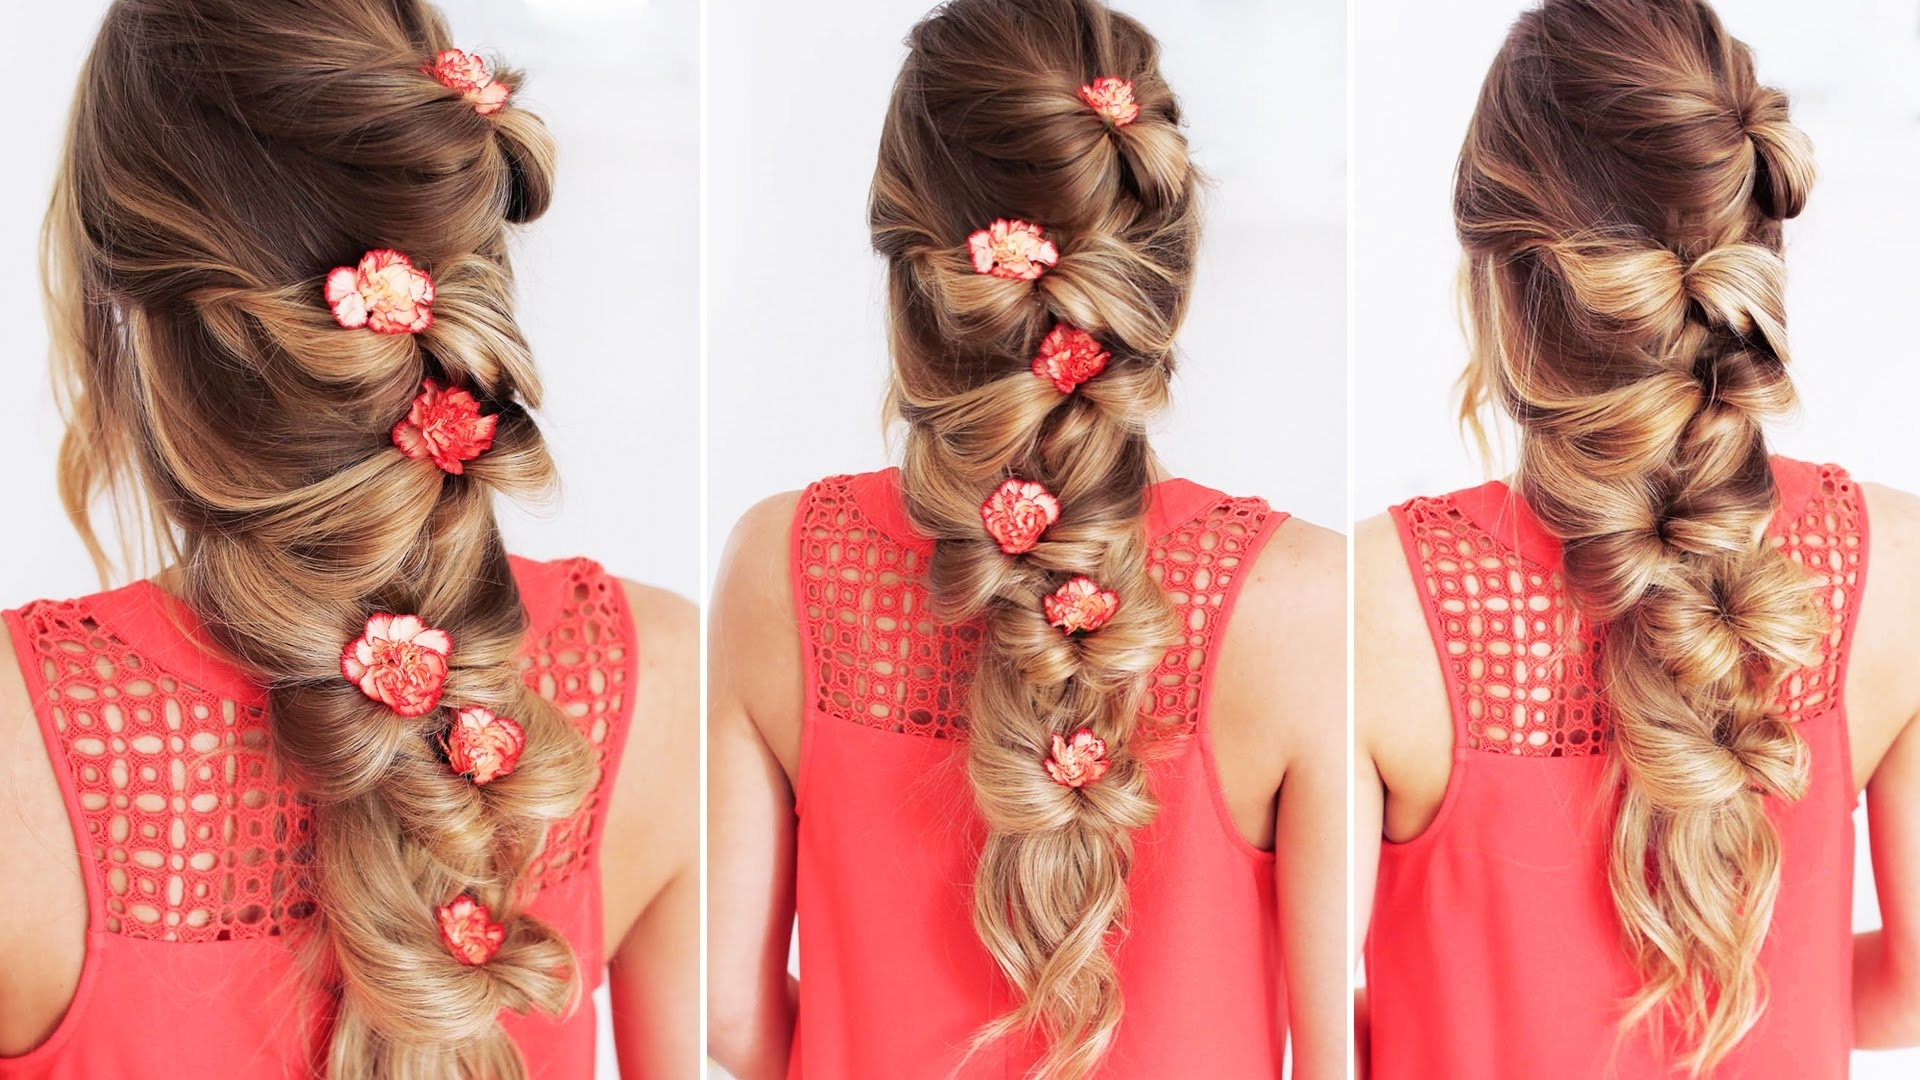 Favorite Bow Braid Ponytail Hairstyles With The Bow Braid (View 9 of 20)